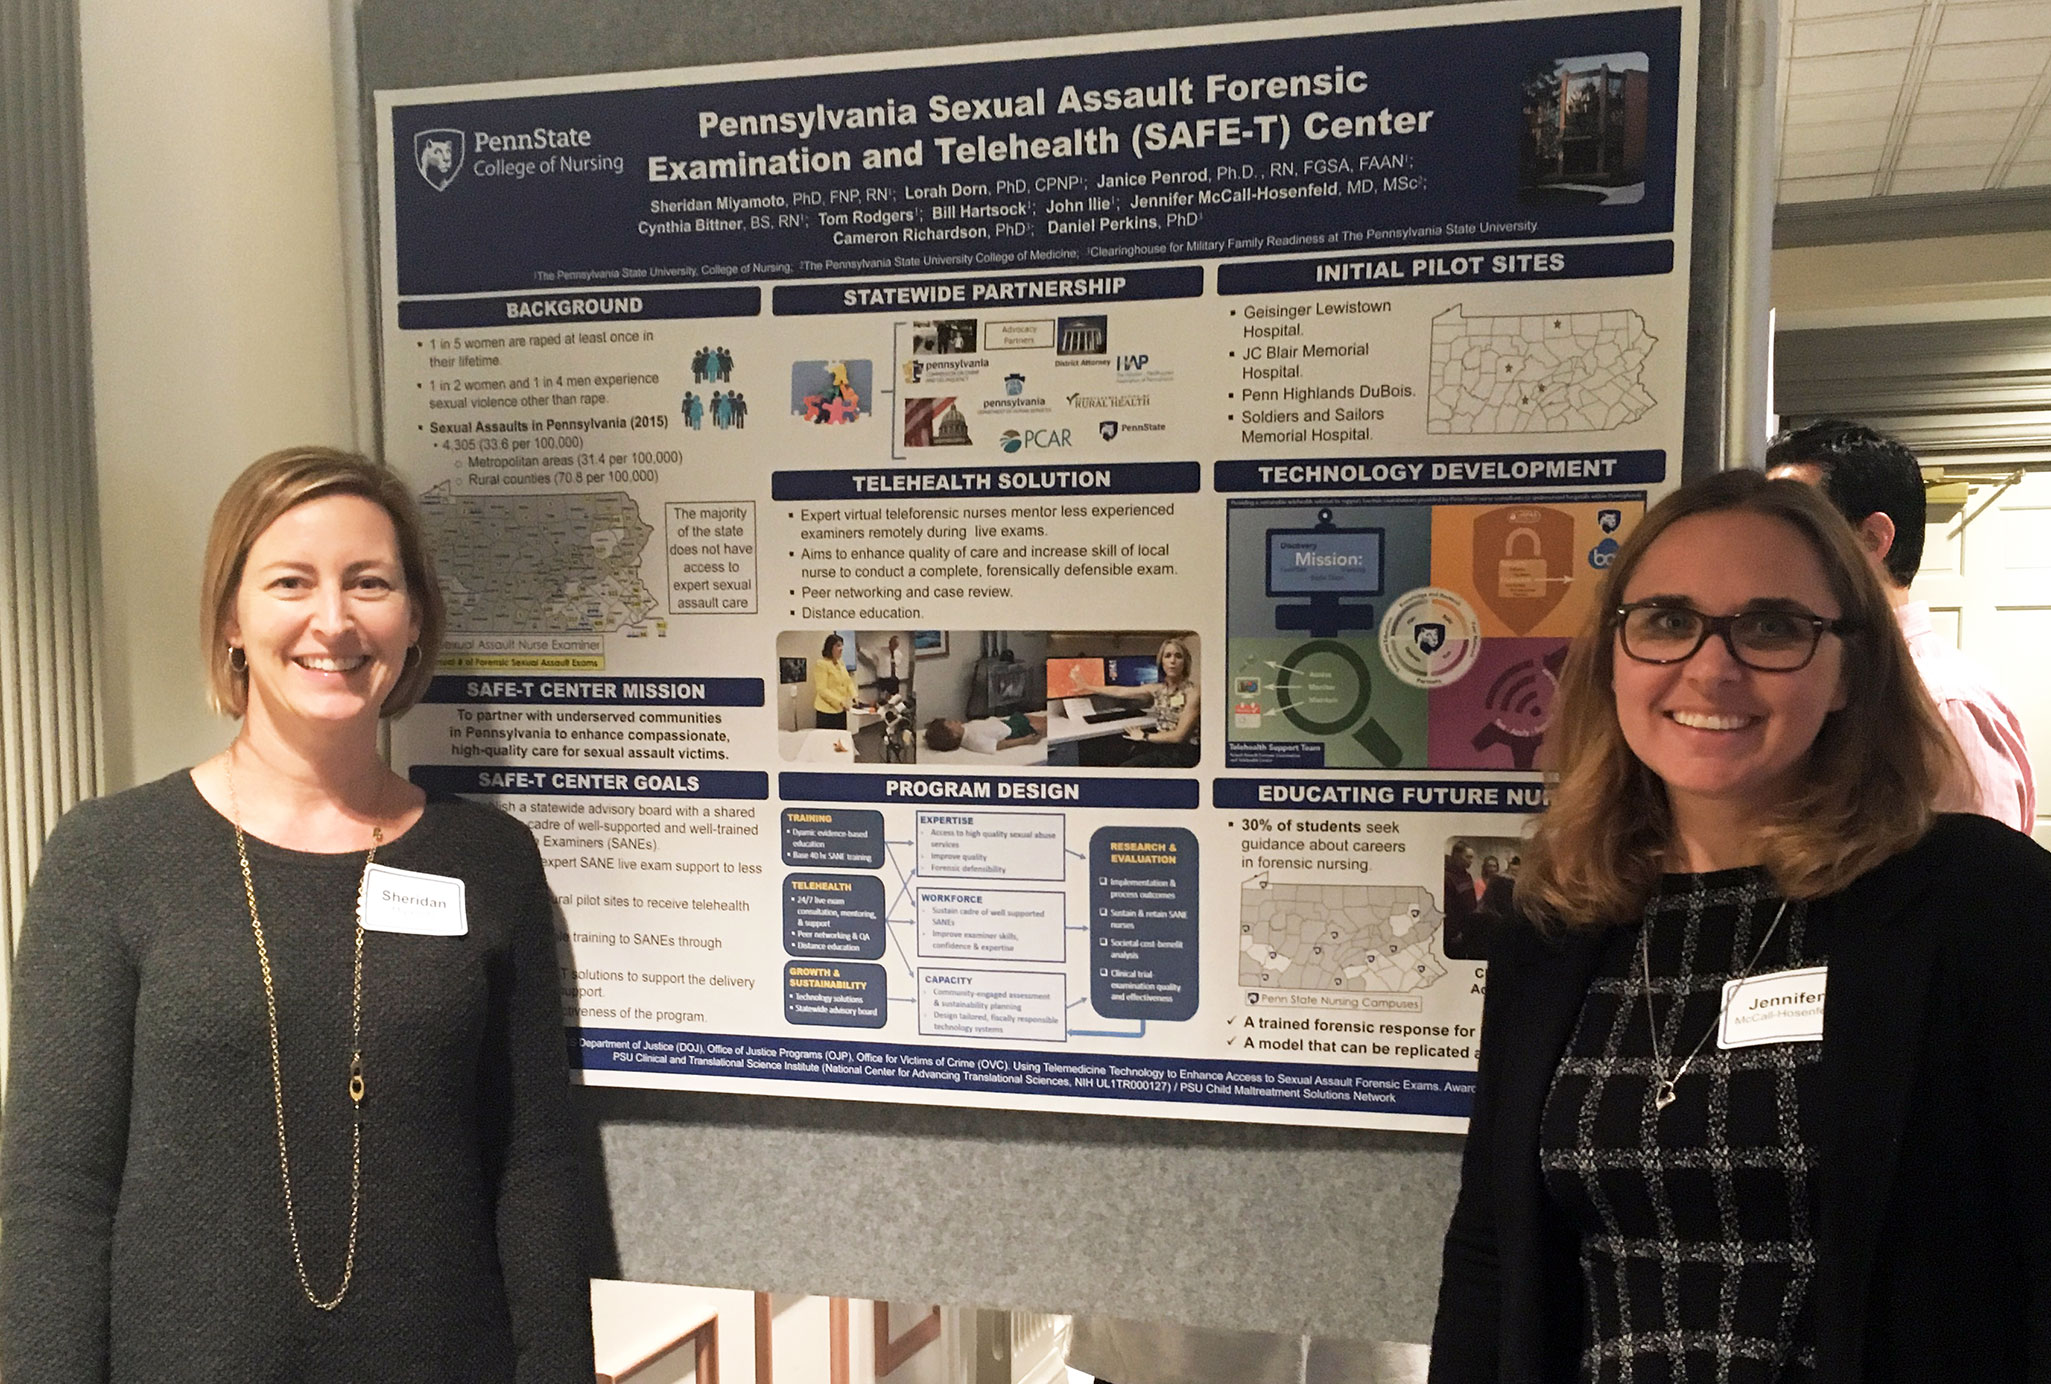 Two women are seen smiling, standing in front of an academic poster.